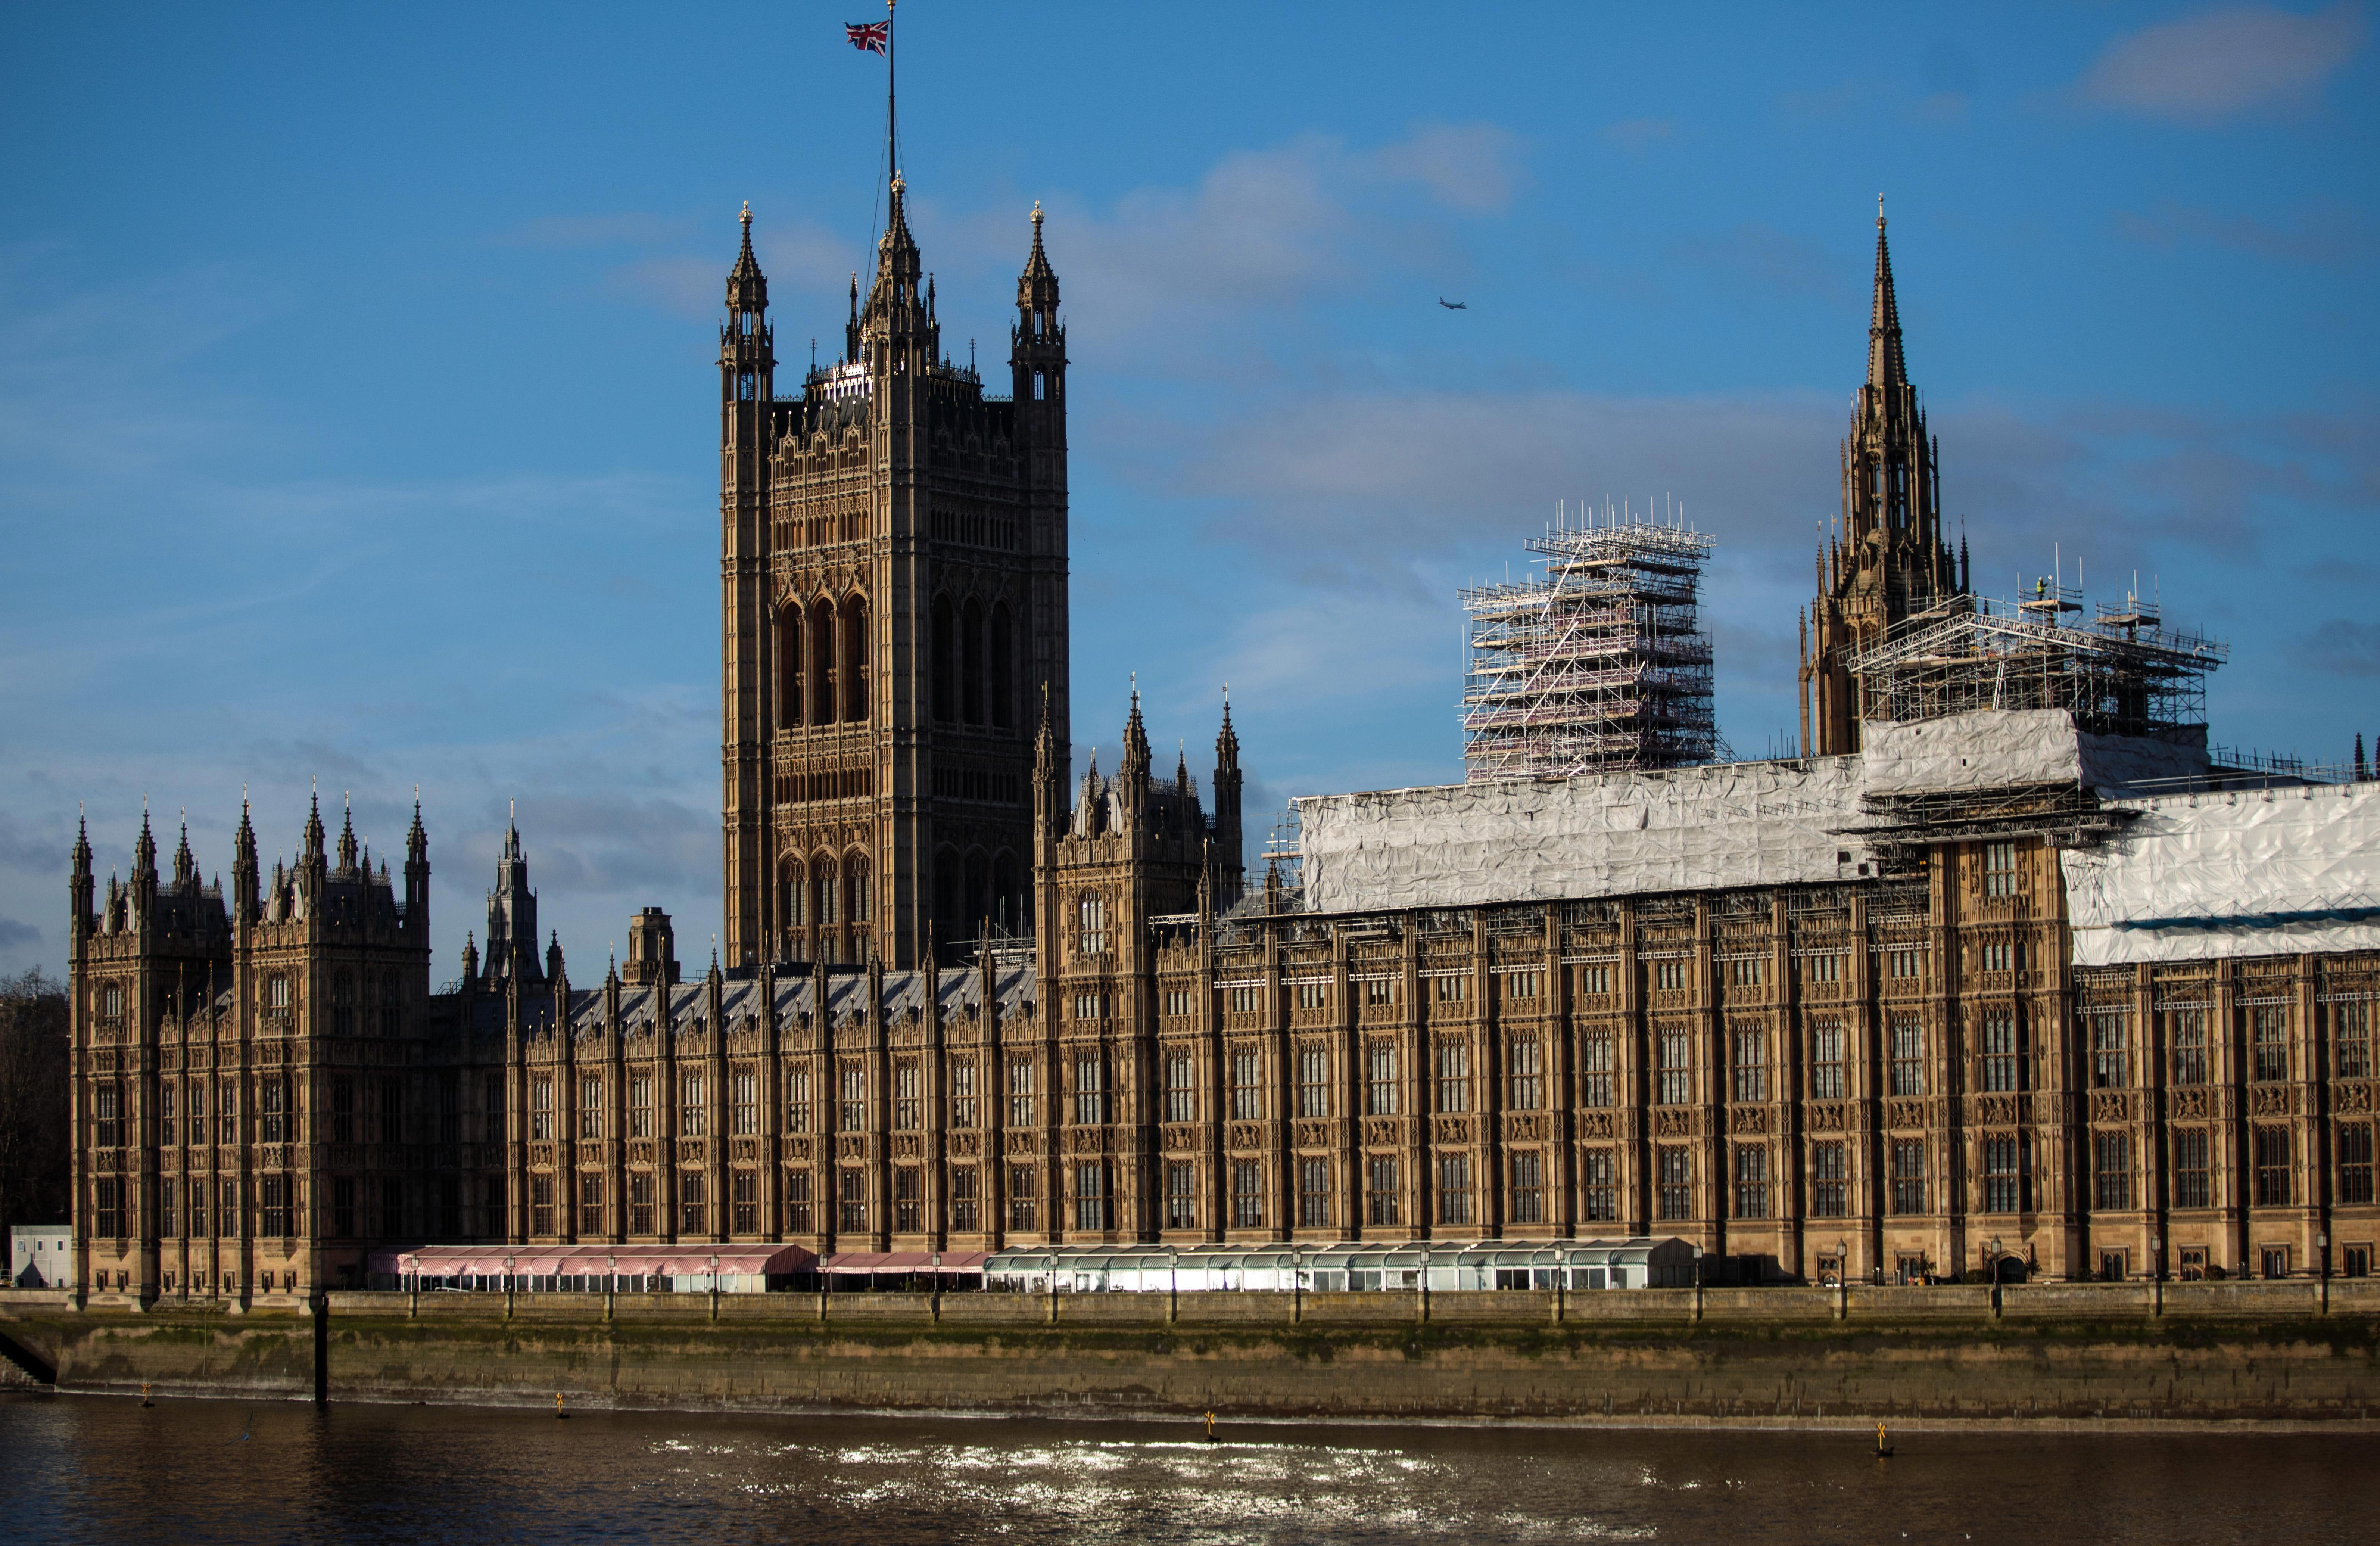 MPs could get kicked out of Parliament under tough new sexual harassment rules as survey finds one in five staff have witnessed inappropriate behaviour